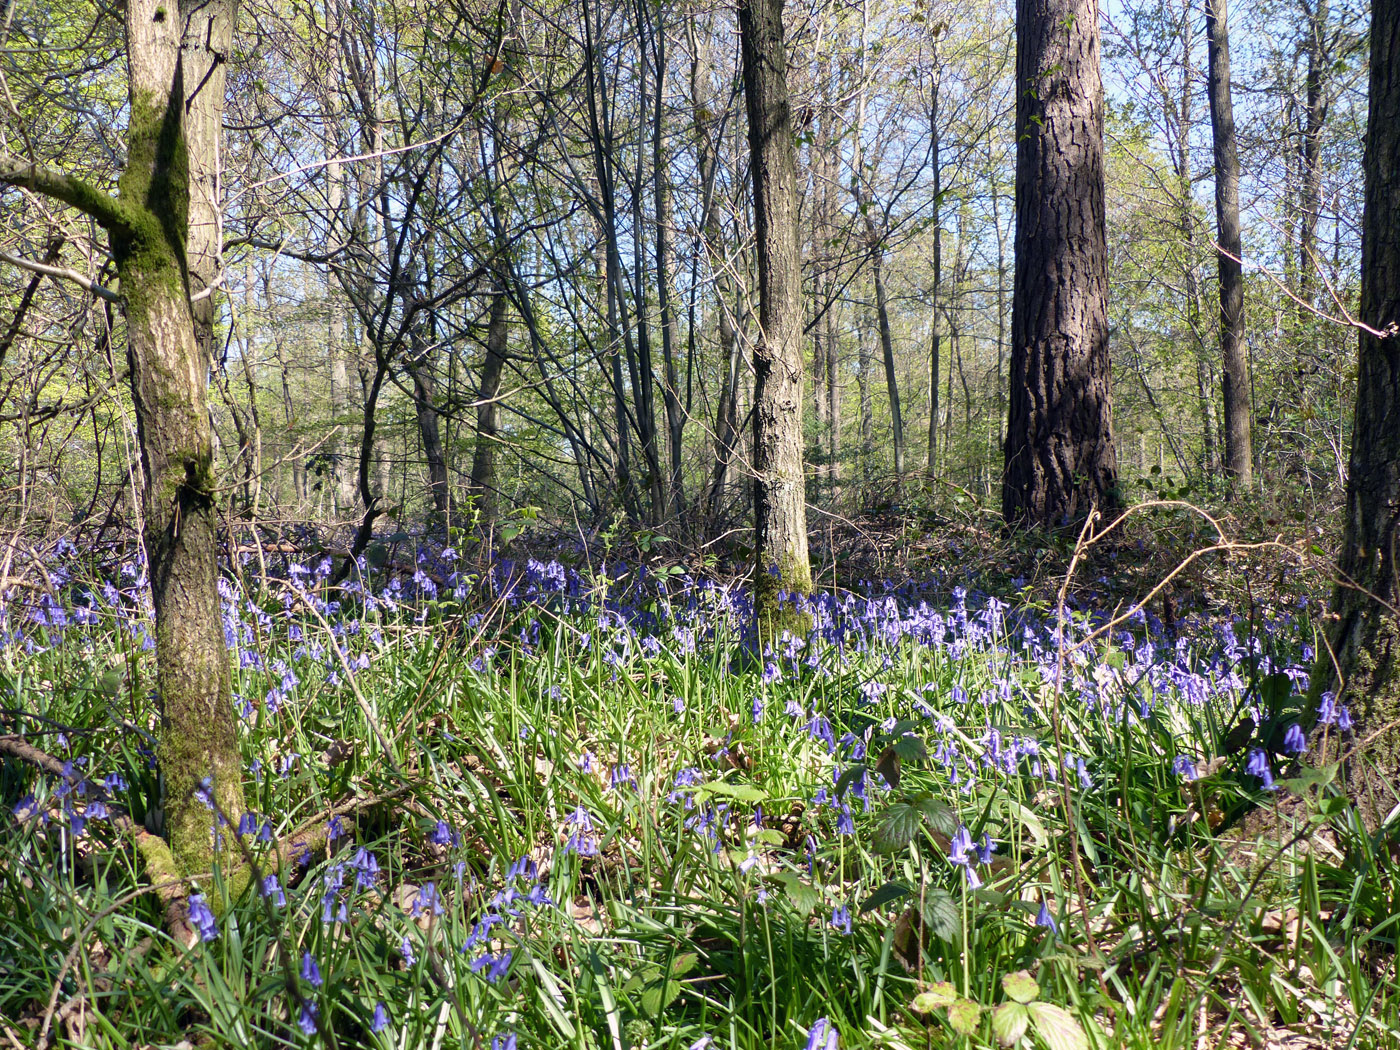 Bluebells in the trees in Black Park